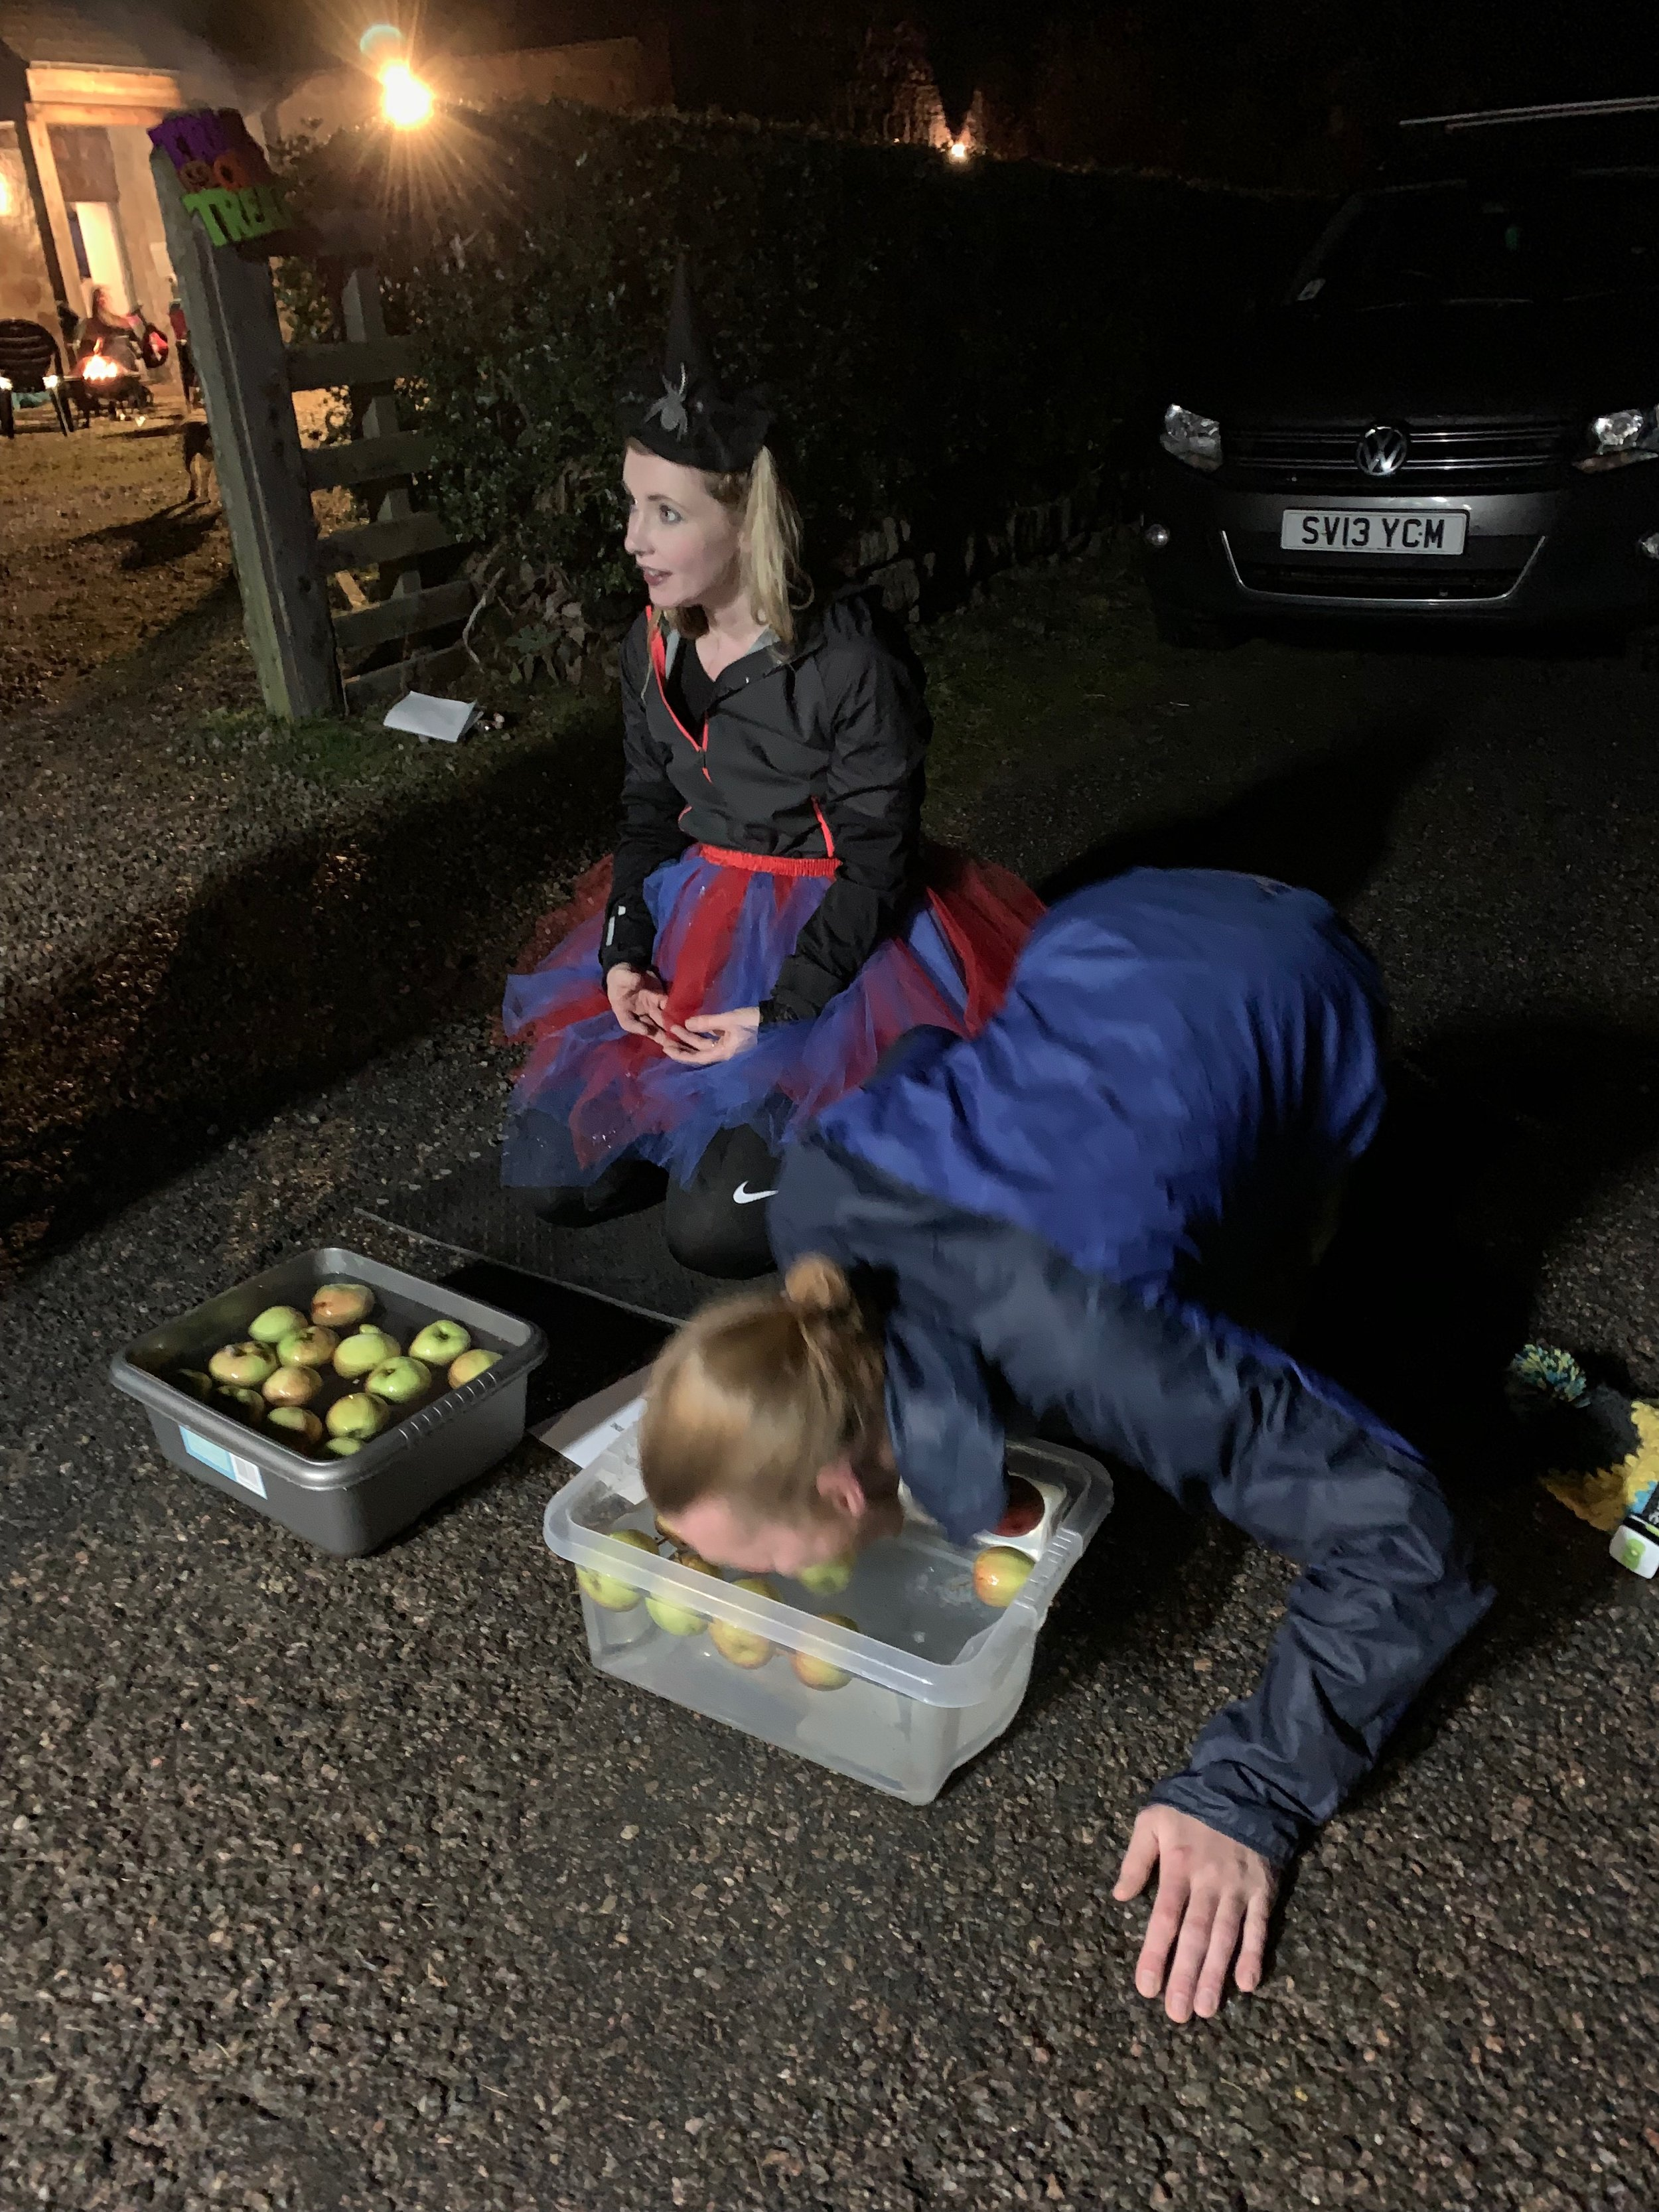 Apple Bobbing - Key to finishing and getting a pizza!